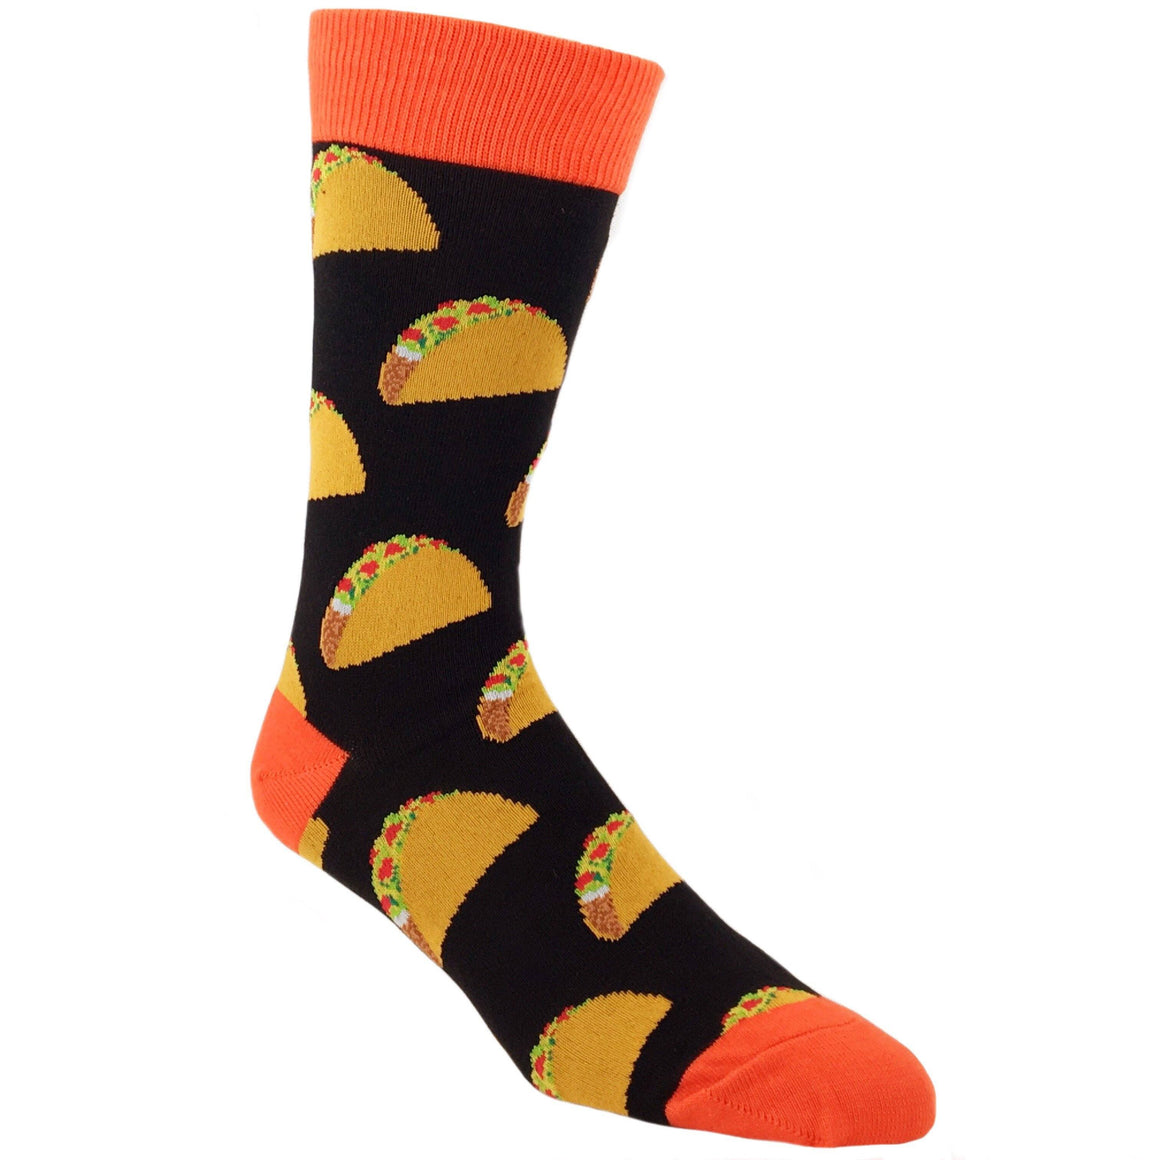 Taco Taco Taco Socks - Black - The Sock Spot